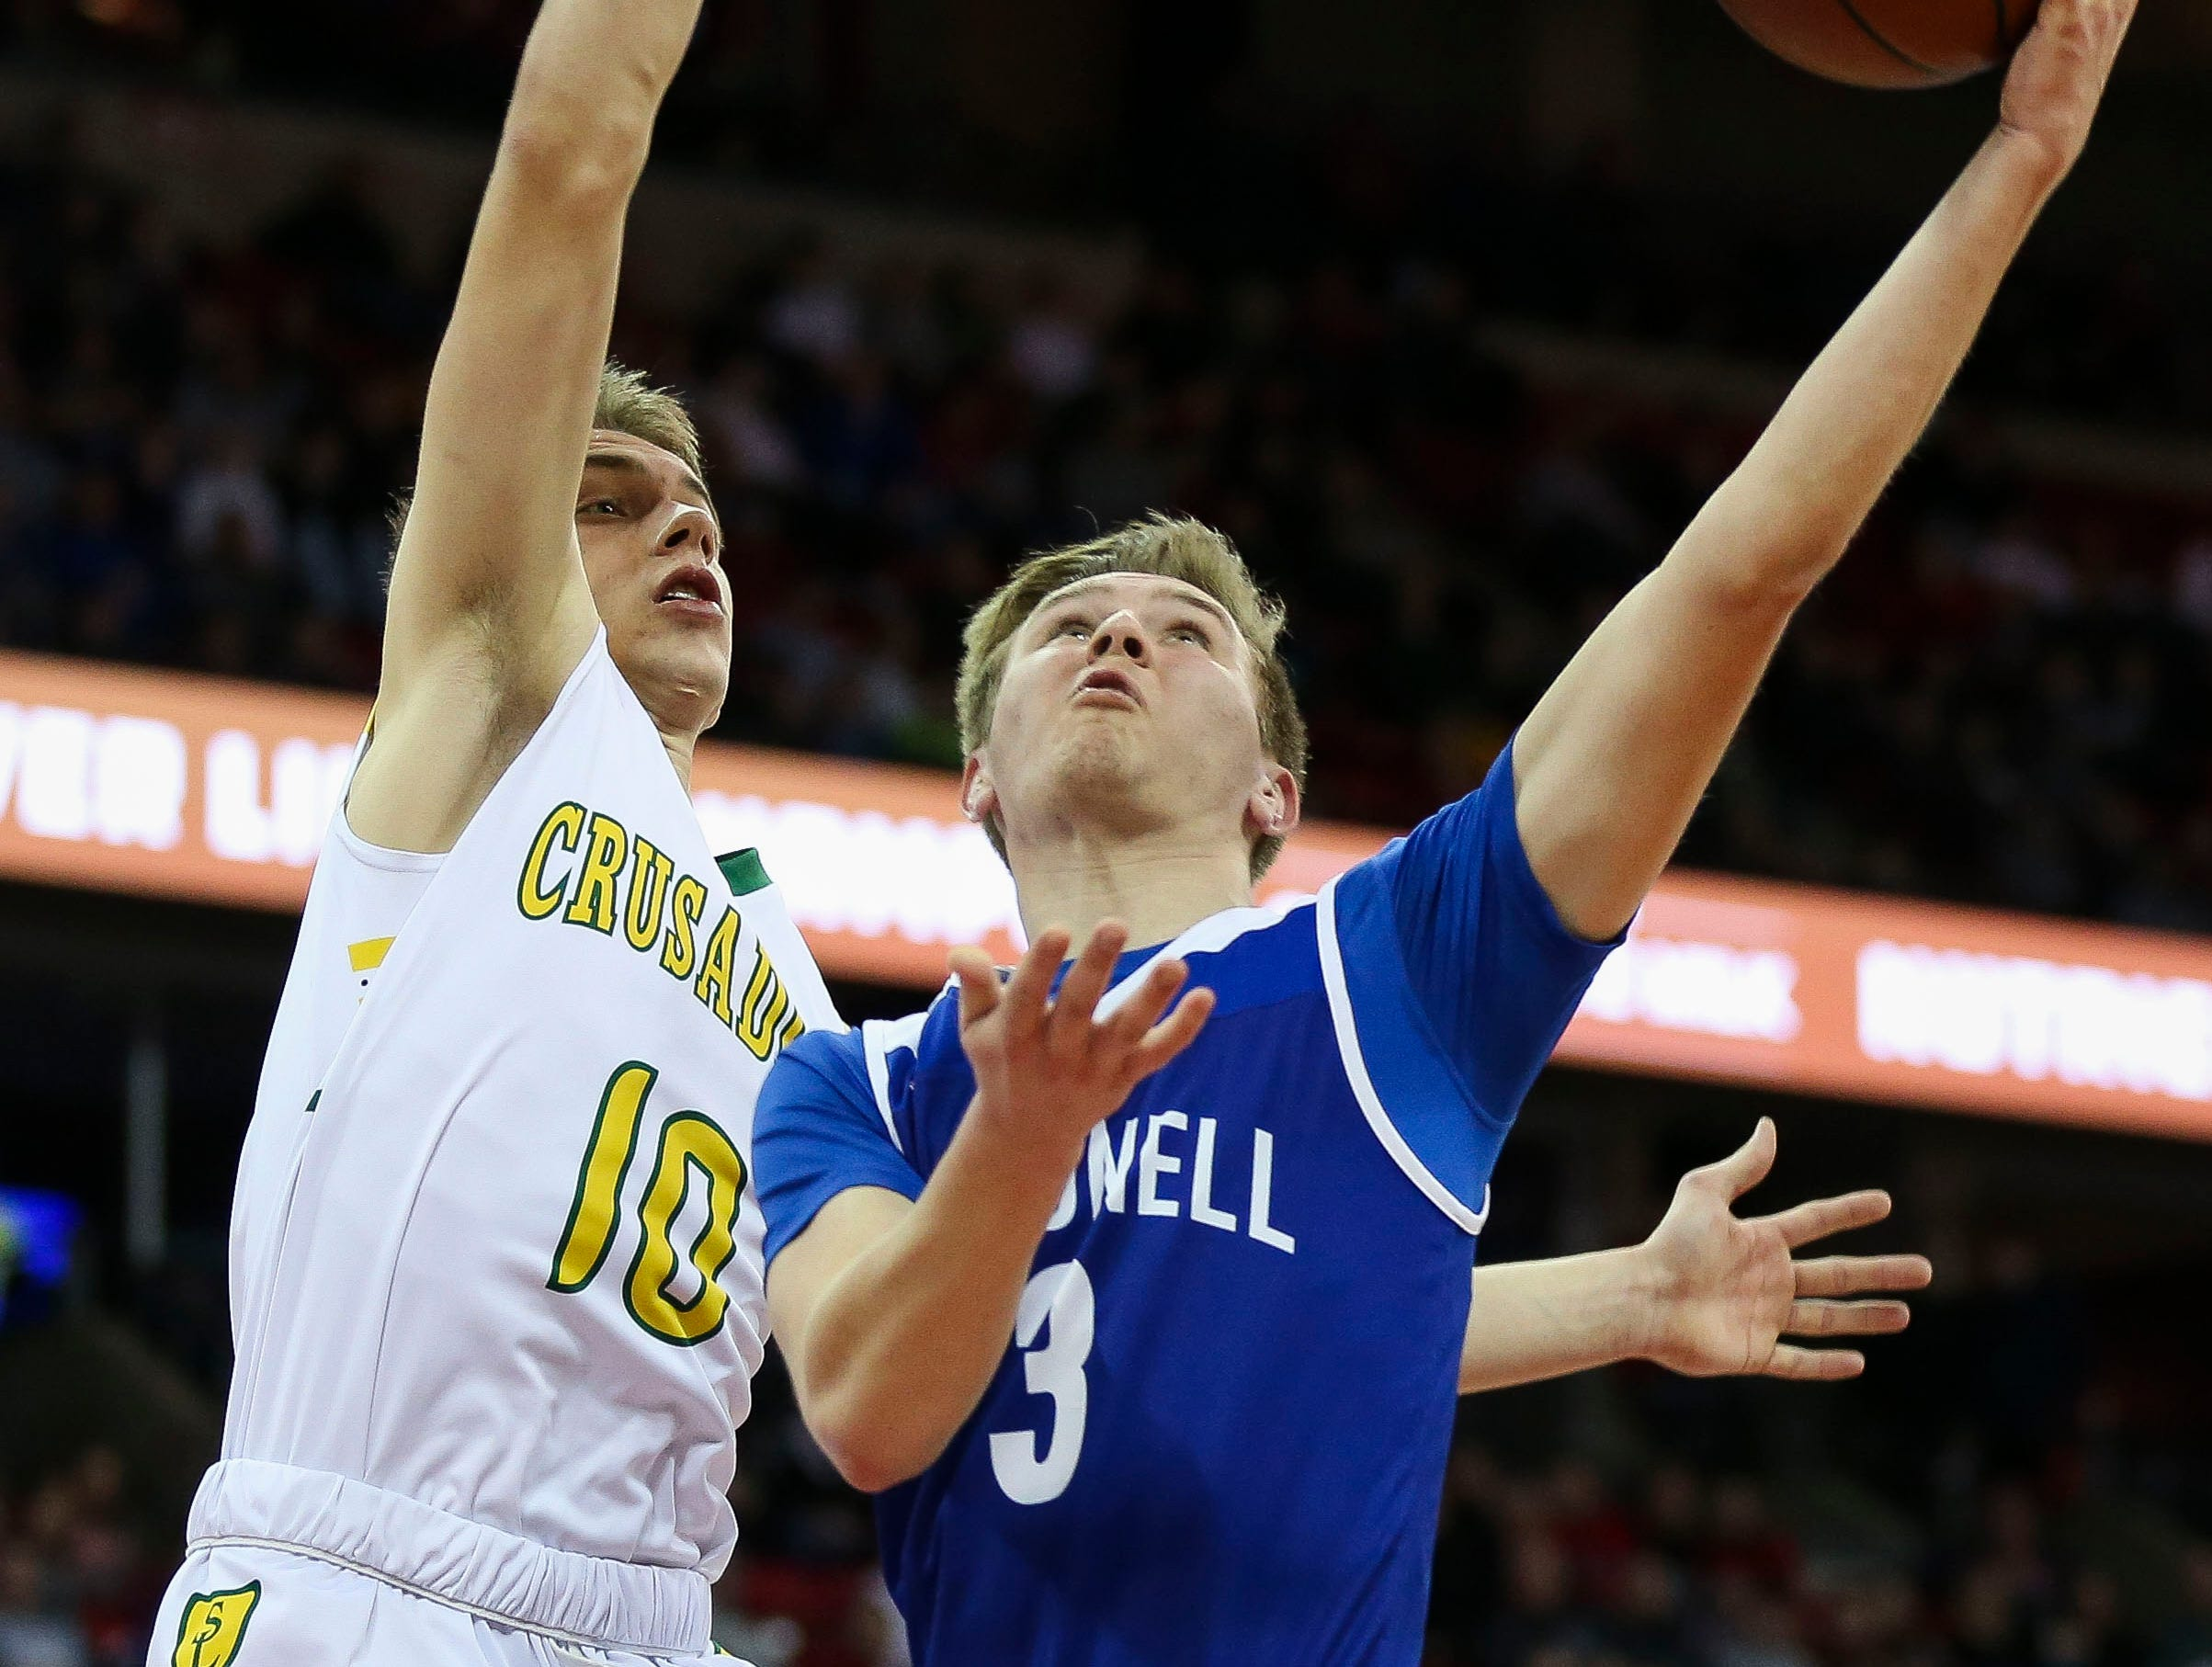 Sheboygan Lutheran High School's Graden Grabowski (10) contests a shot by McDonell Central Catholic High School's JD Bohaty (3) in a Division 5 boys basketball state semifinal on Friday, March 15, 2019, at the Kohl Center in Madison, Wis.